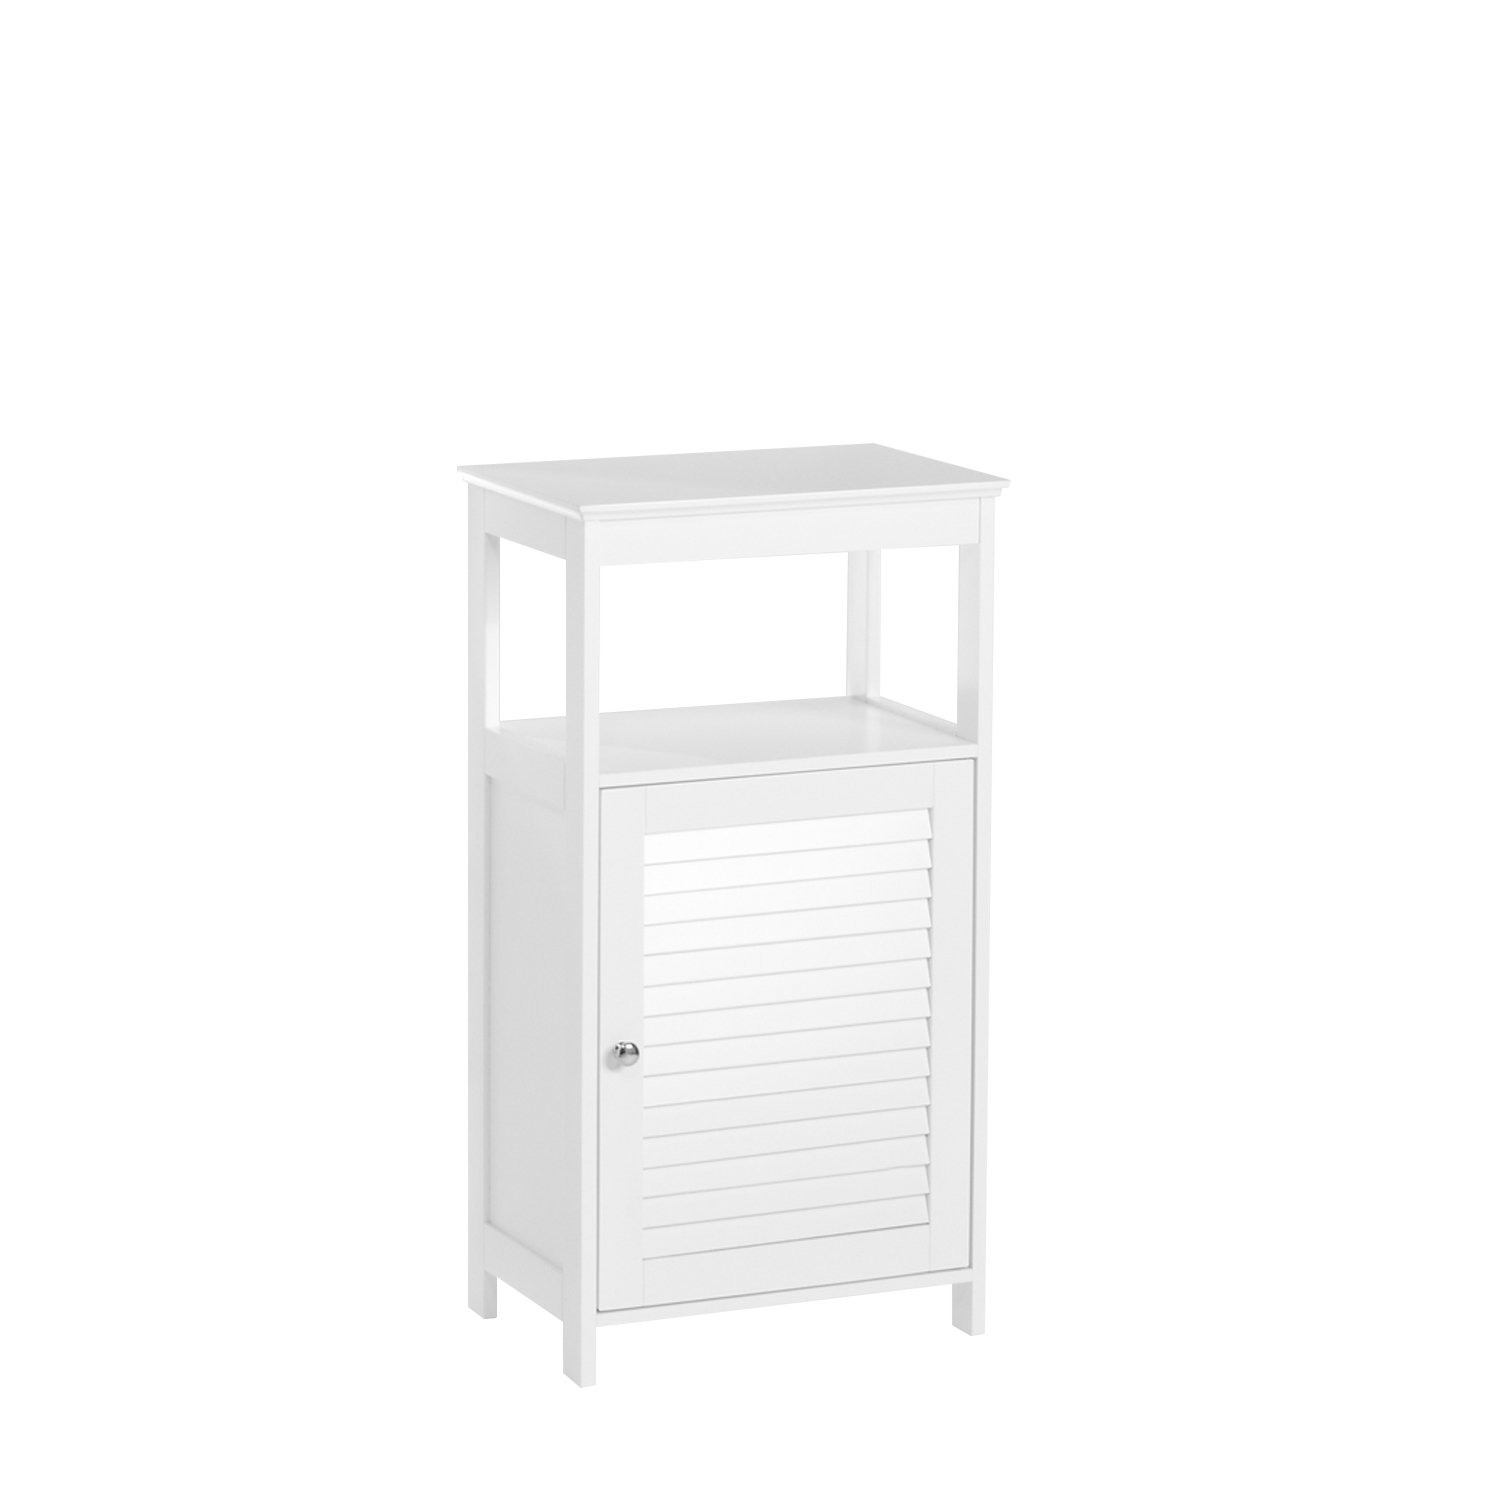 Amazon.com: RiverRidge Home Ellsworth Collection Single Door Floor Cabinet,  White: Home U0026 Kitchen